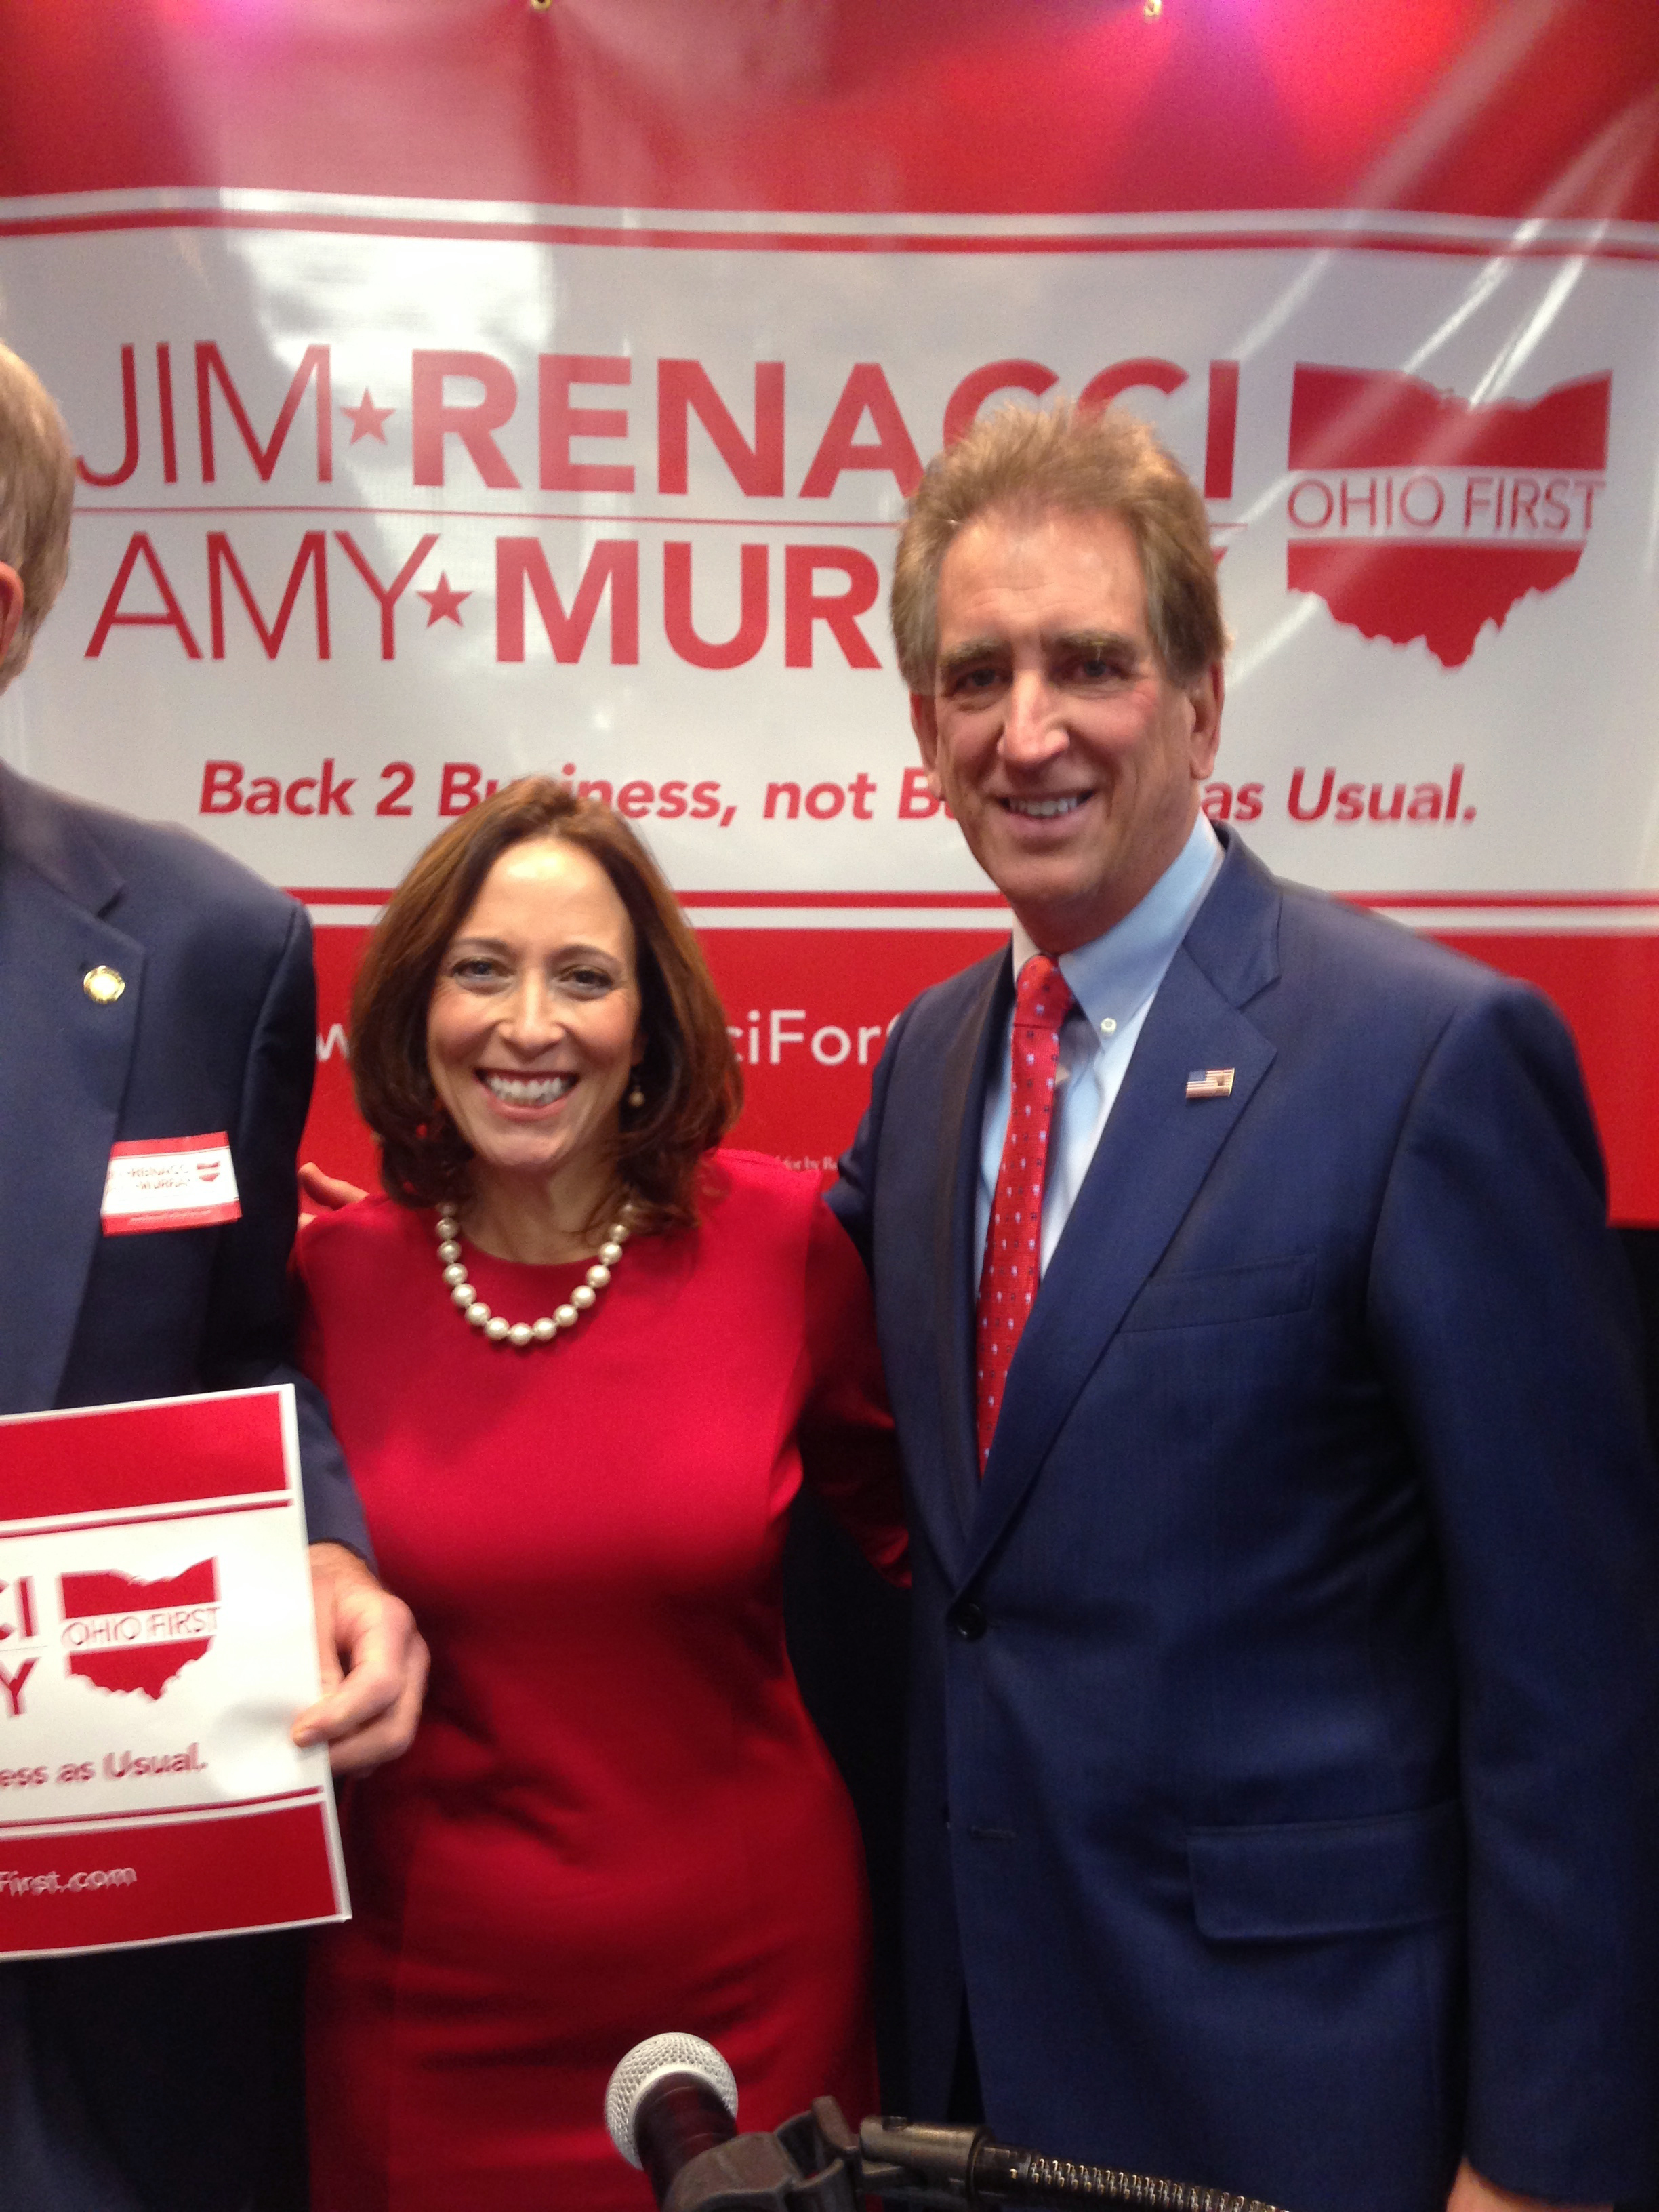 Renacci taps Cincinnati councilman as running mate - The Blade